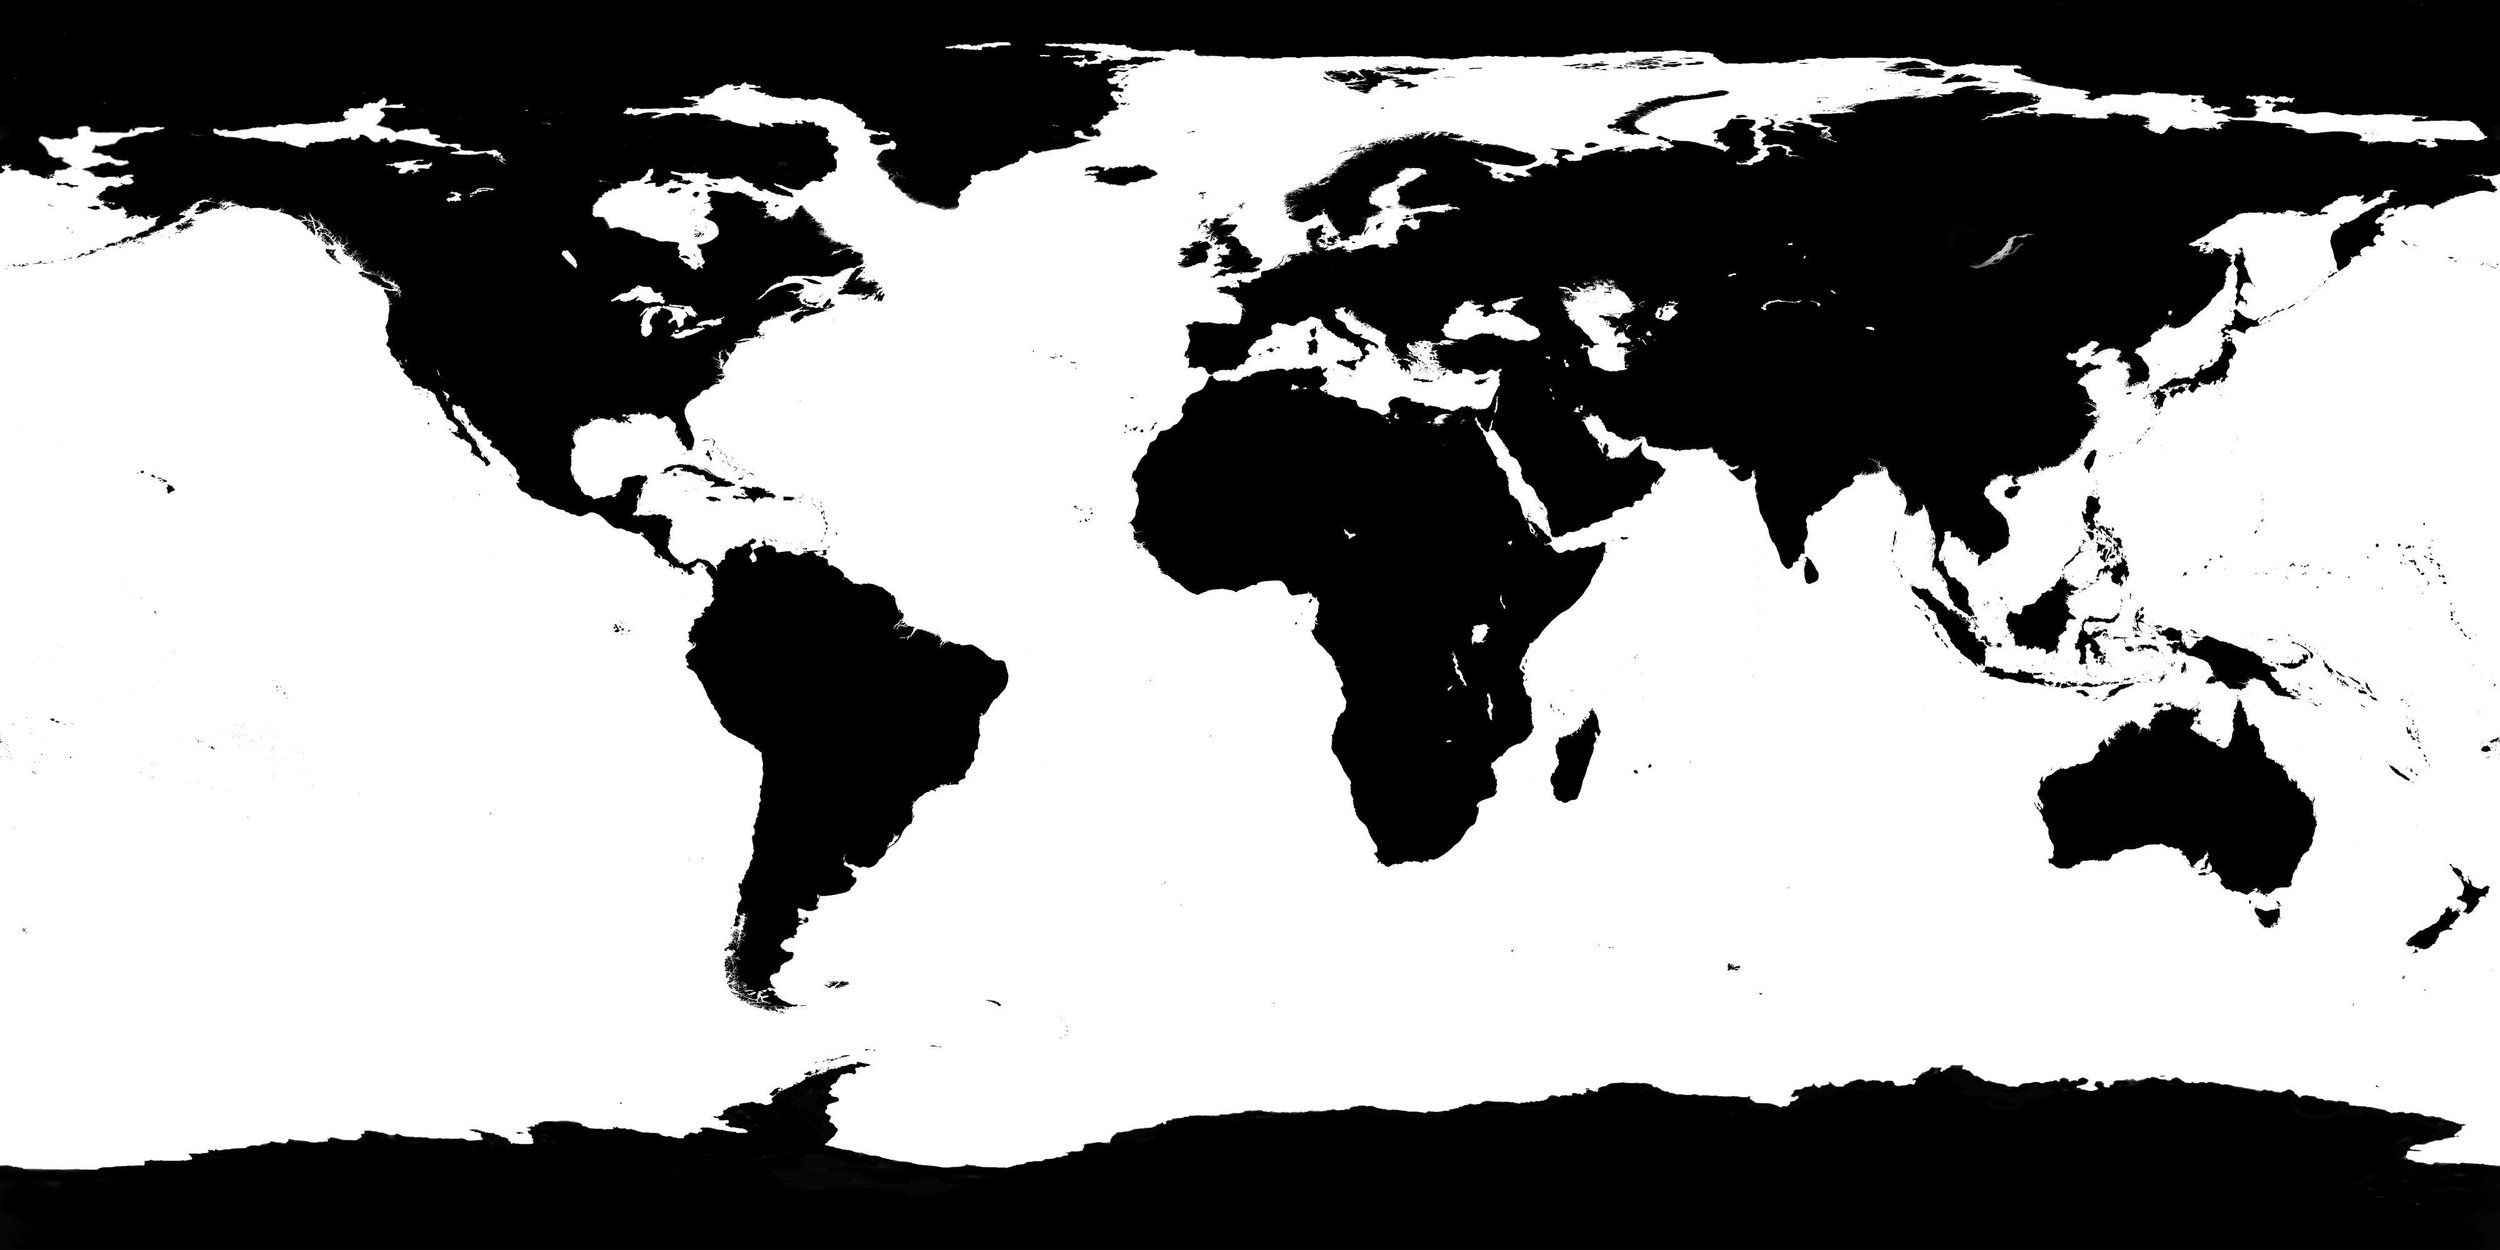 world-map-images-in-black-and-white-new-world-map-black-and-white-flat-new-world-map-black-and-white-of-world-map-images-in-black-and-white.png